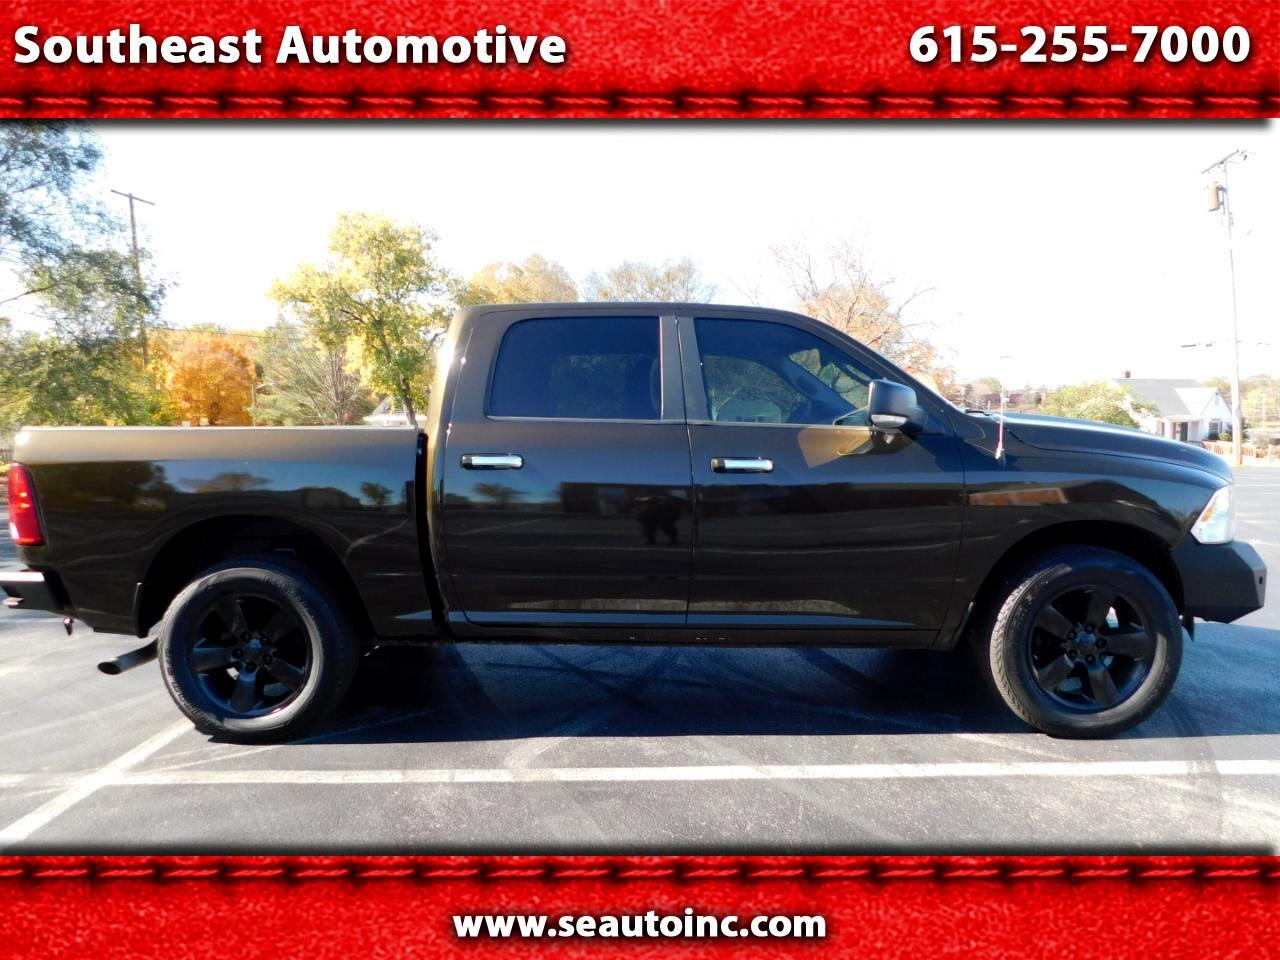 Buy Here Pay Here 2007 Dodge Ram 1500 Slt Quad Cab 2wd For Sale In Nashville Tn 37211 Southeast Automotive